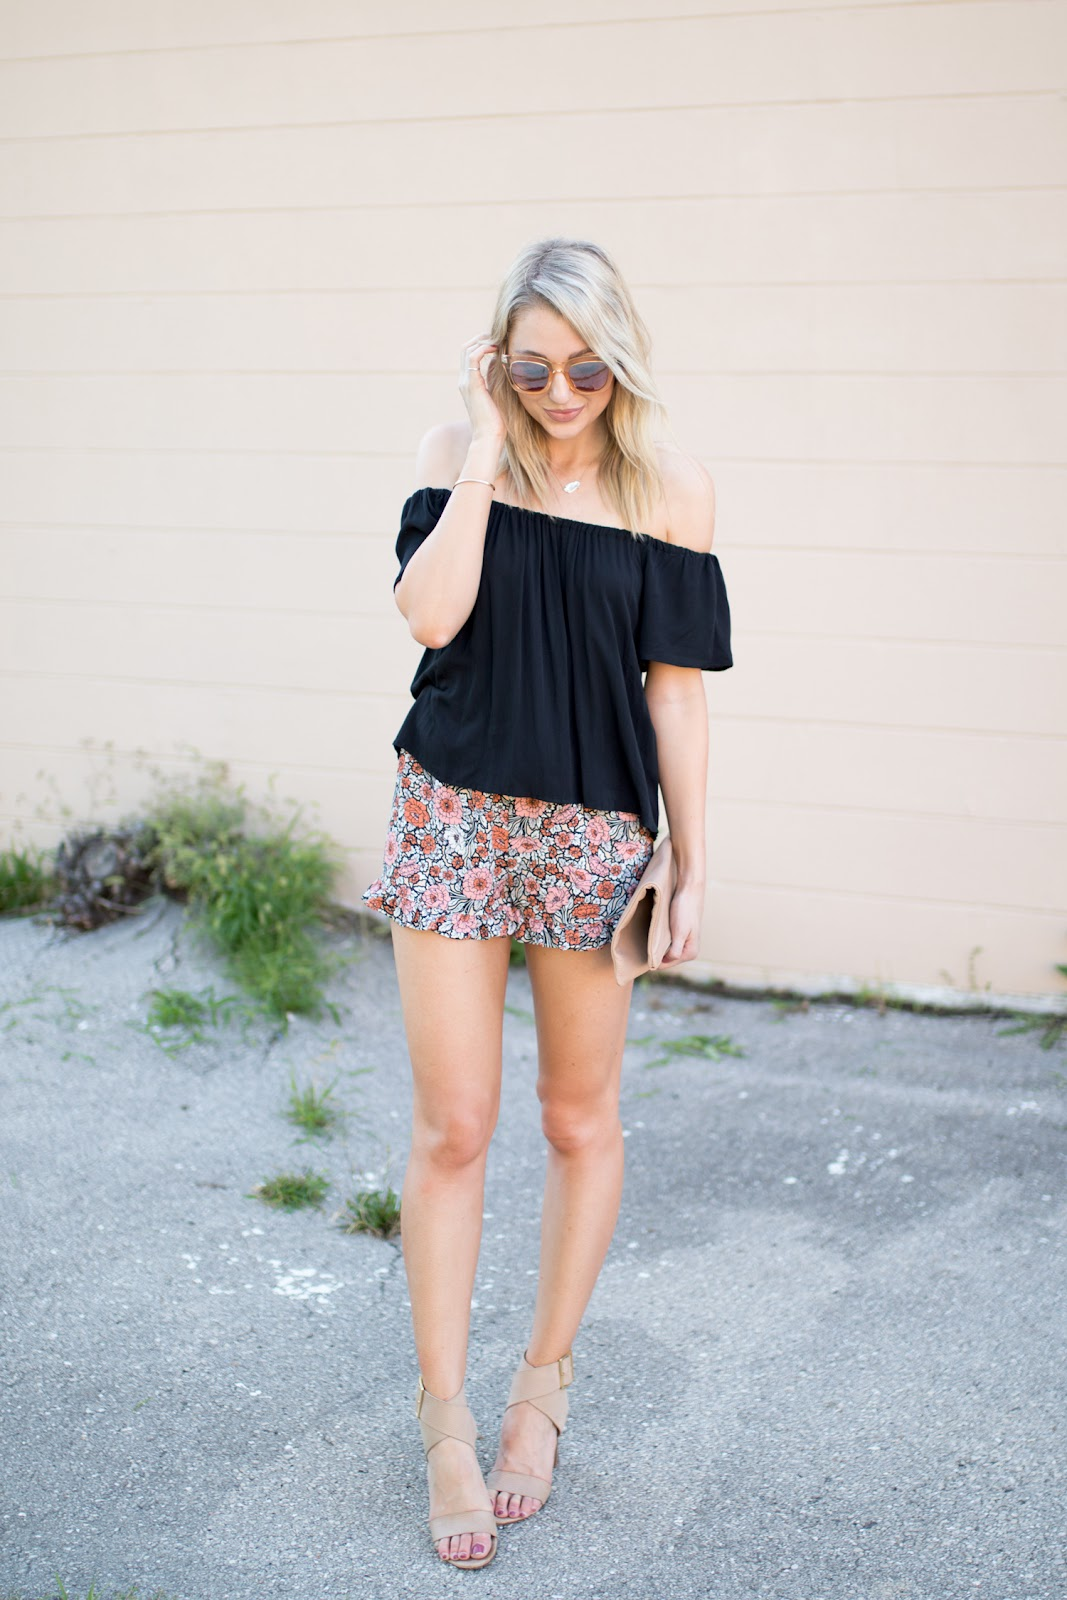 Black off-the-shoulder top with floral shorts